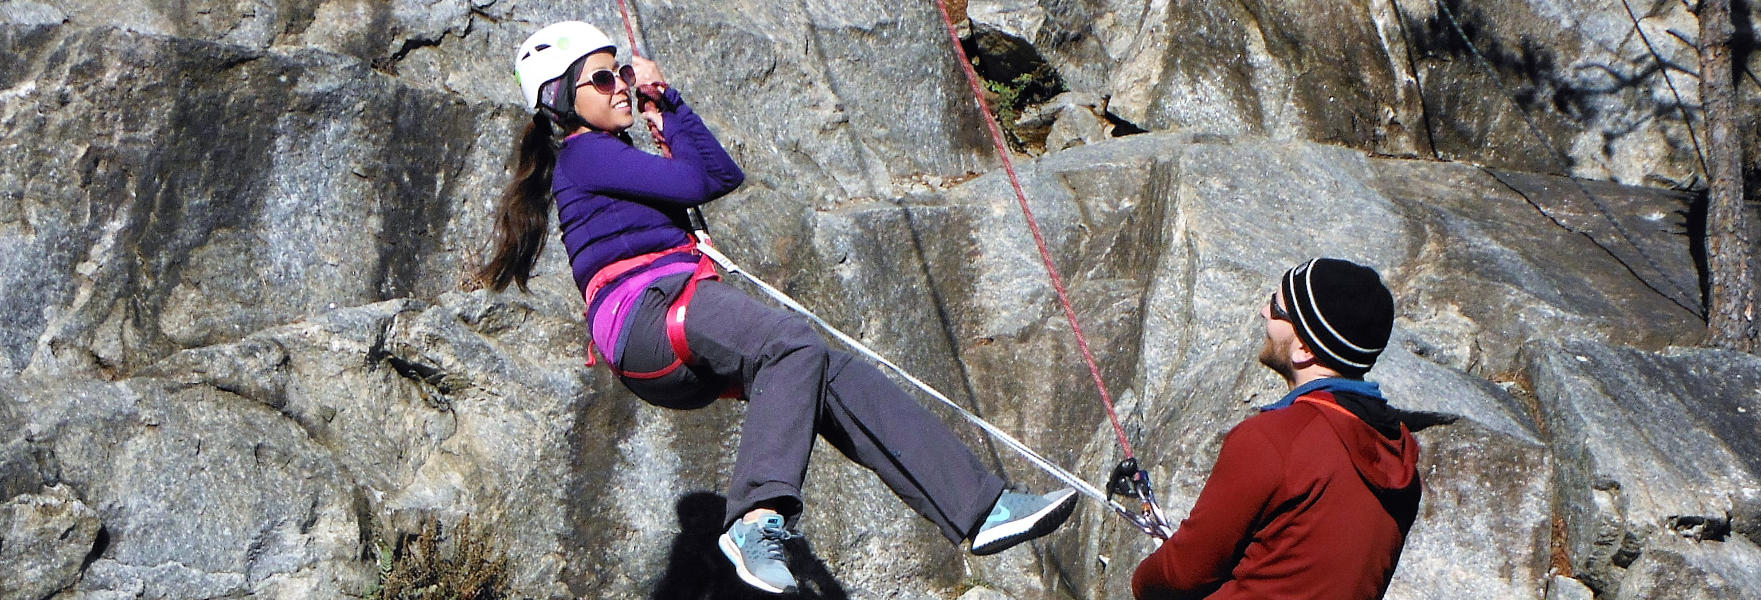 images/slides/rock-climbing-rescue-clinic.jpg